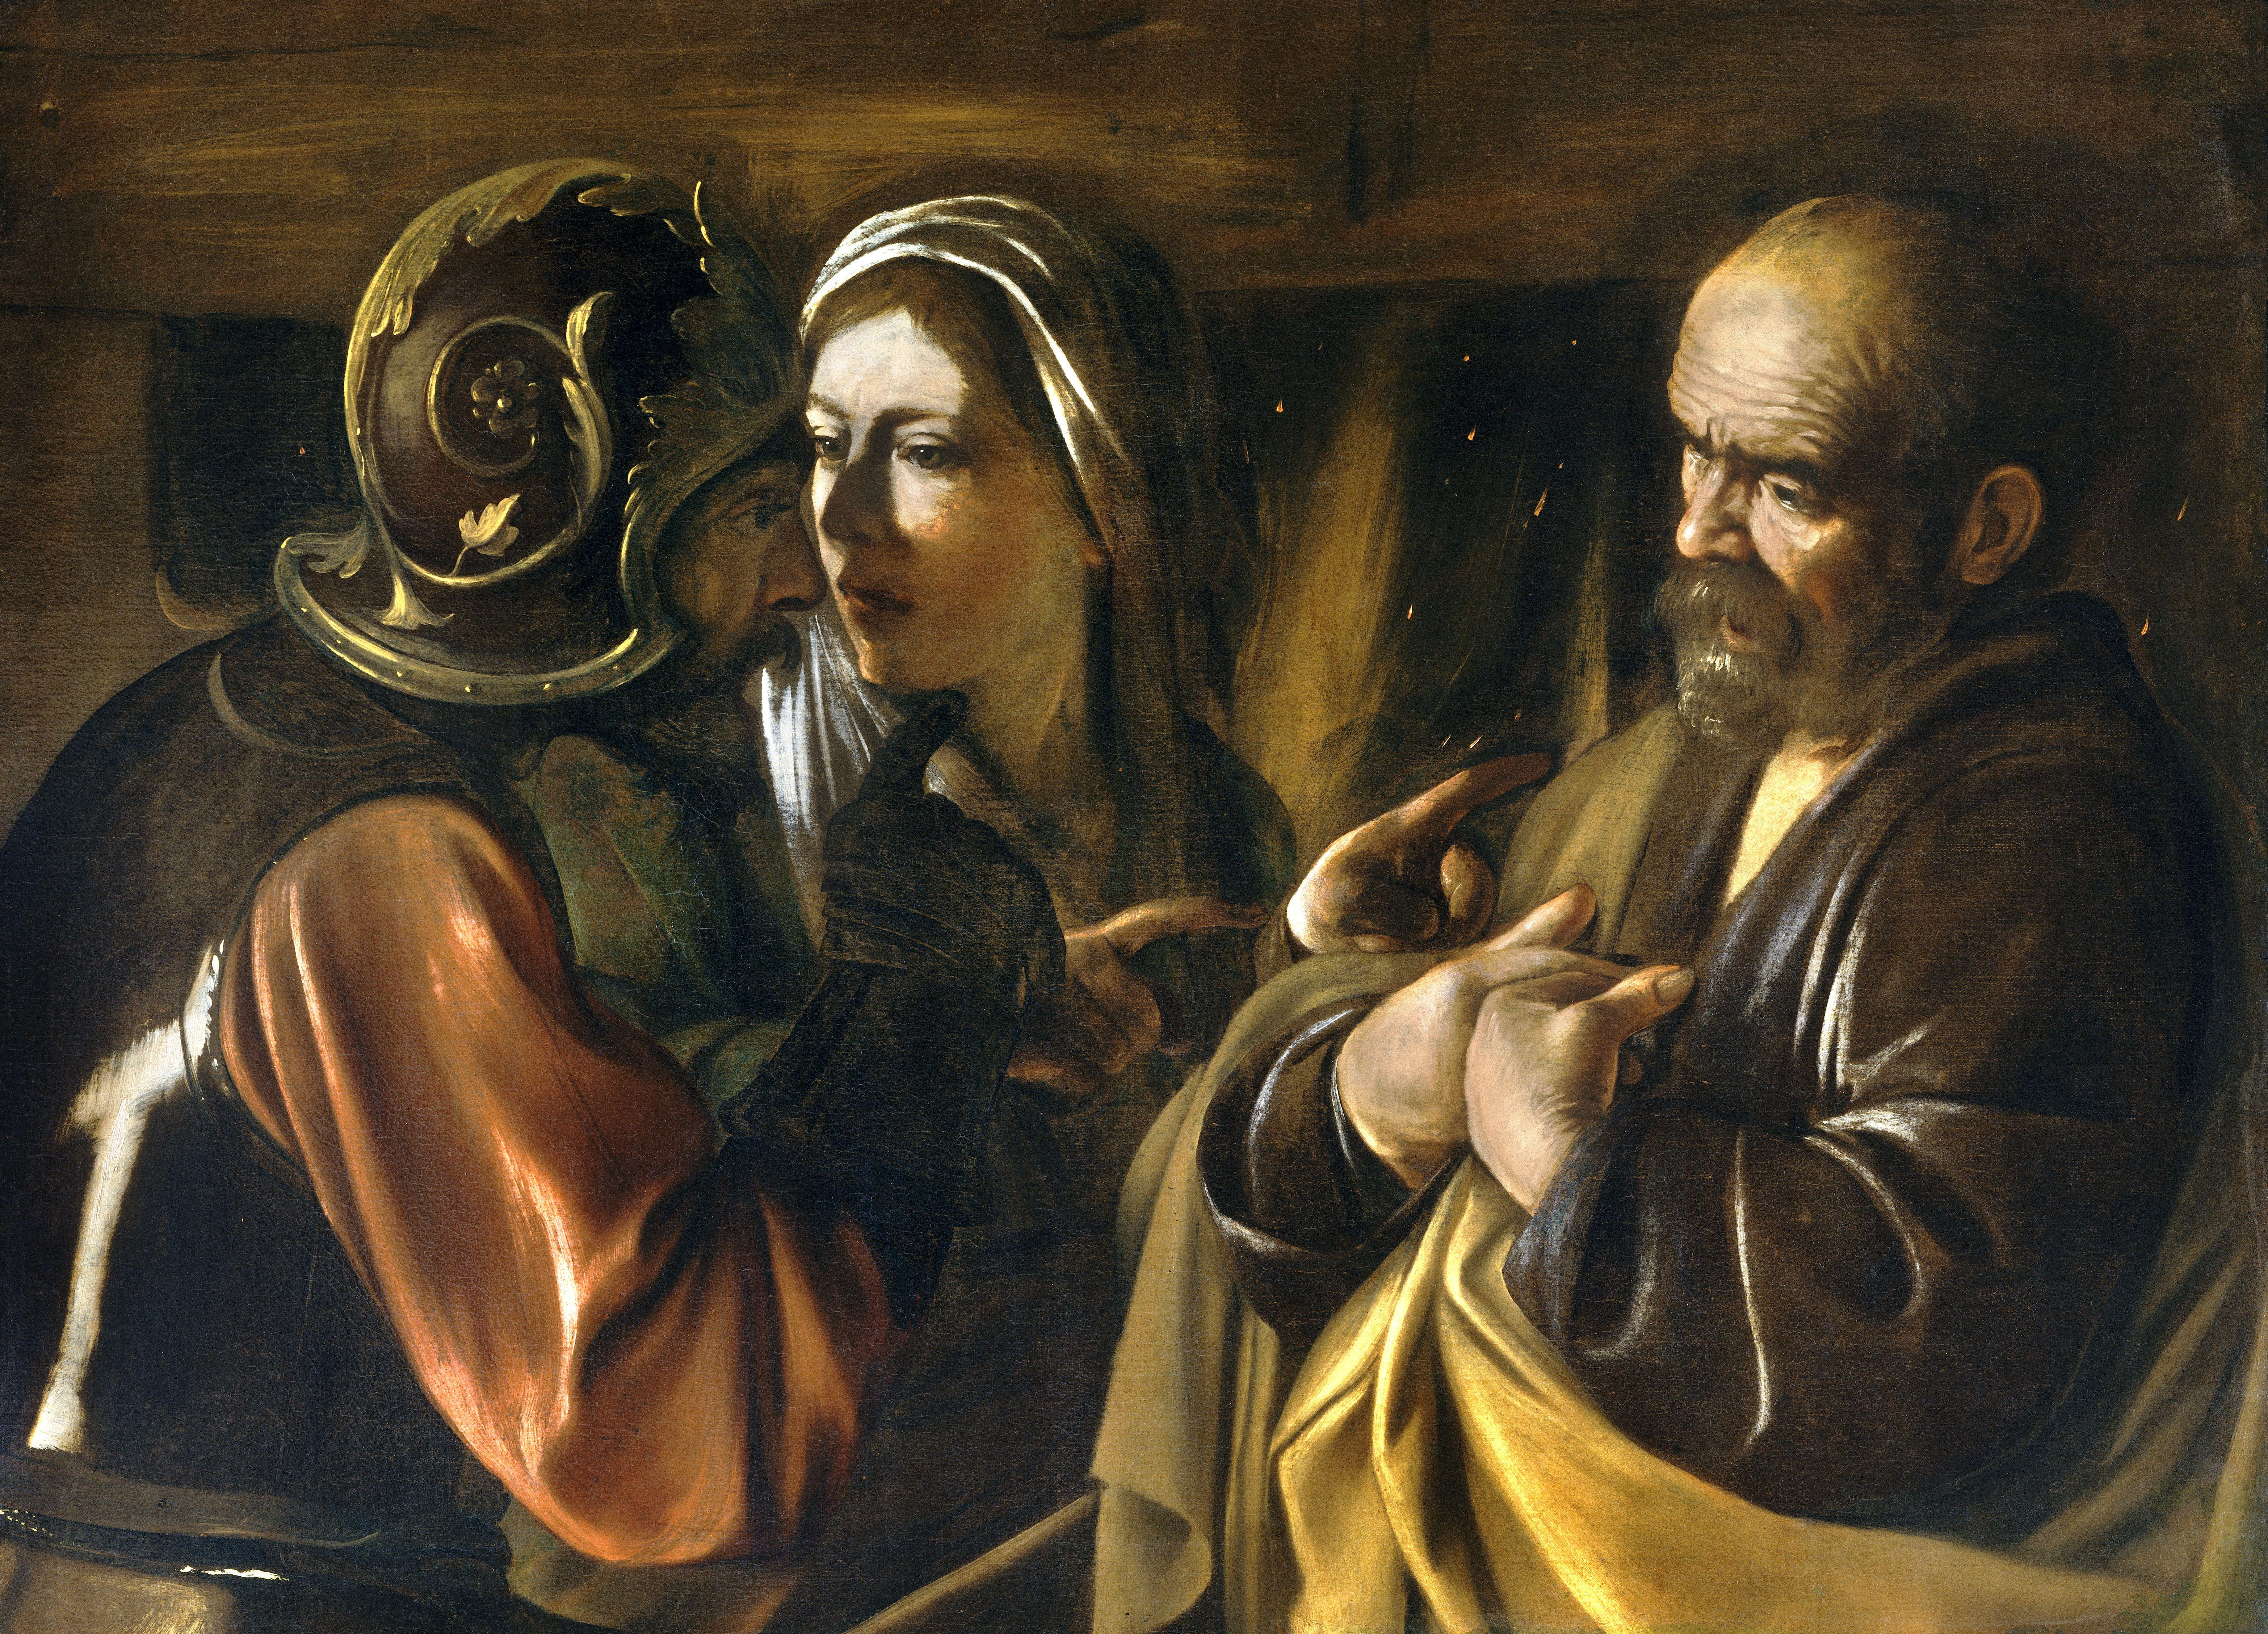 denial st peter caravaggio 1610 was the last year of caravaggio's life in that final year, he painted the  denial of saint peter the painting usually hangs at the.